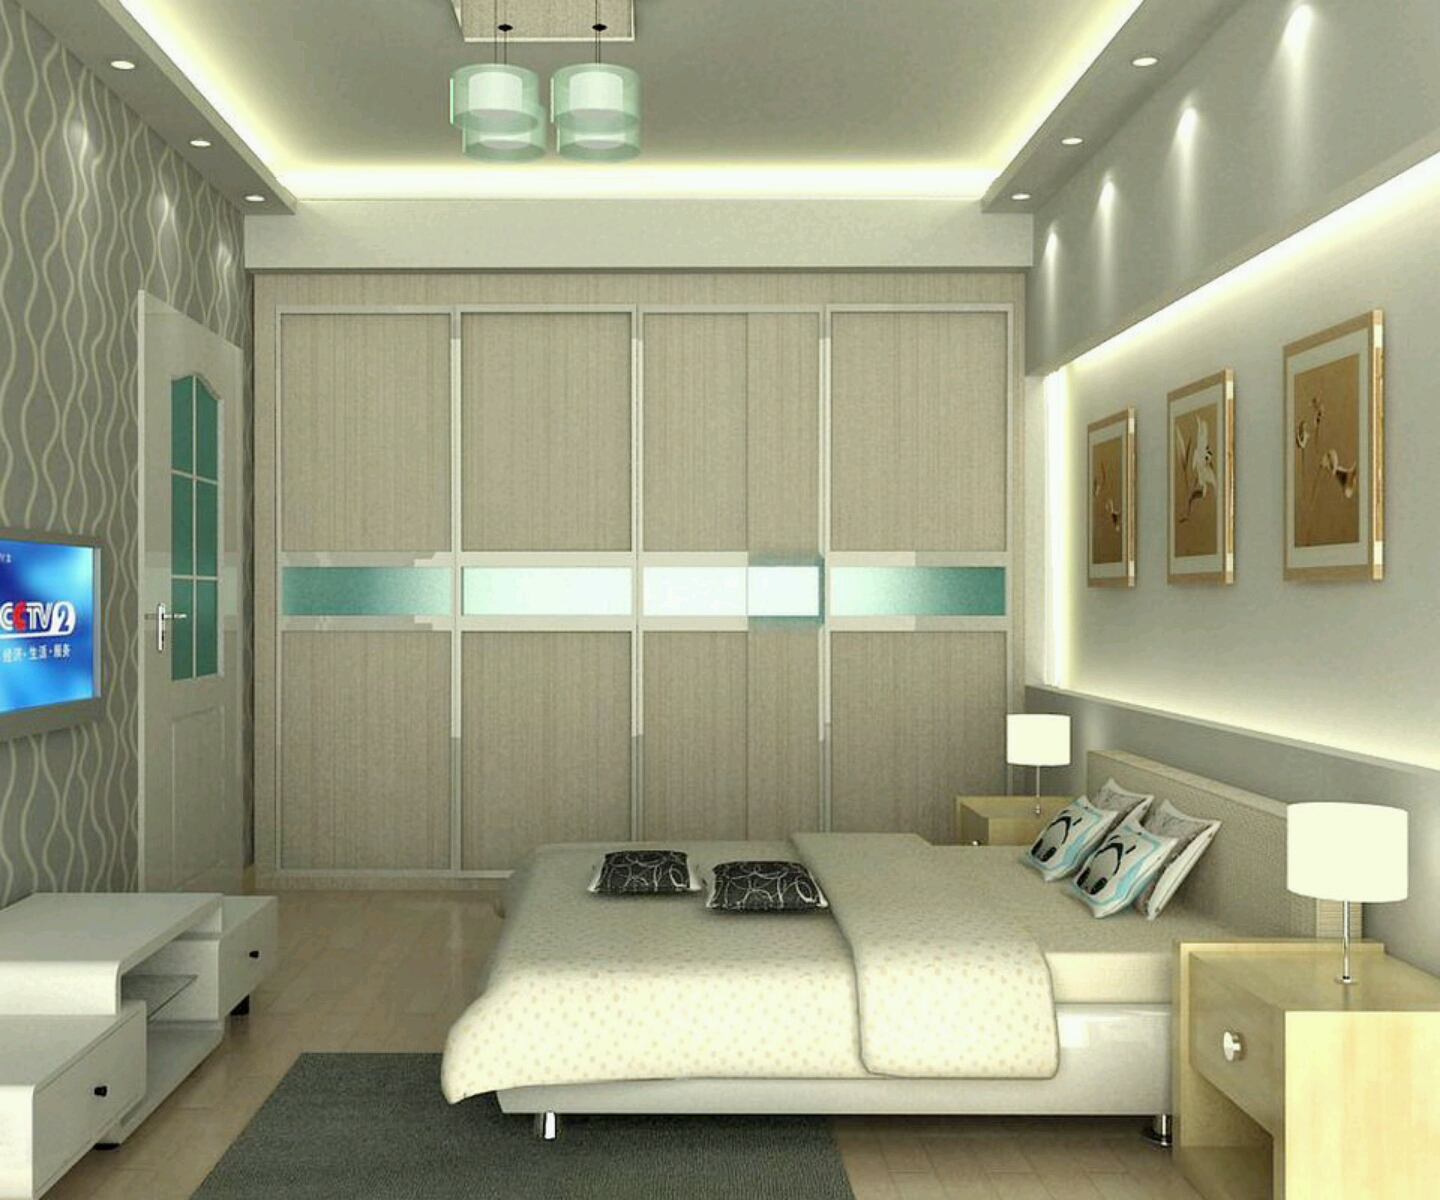 New home designs latest modern homes bedrooms designs Best bed designs images